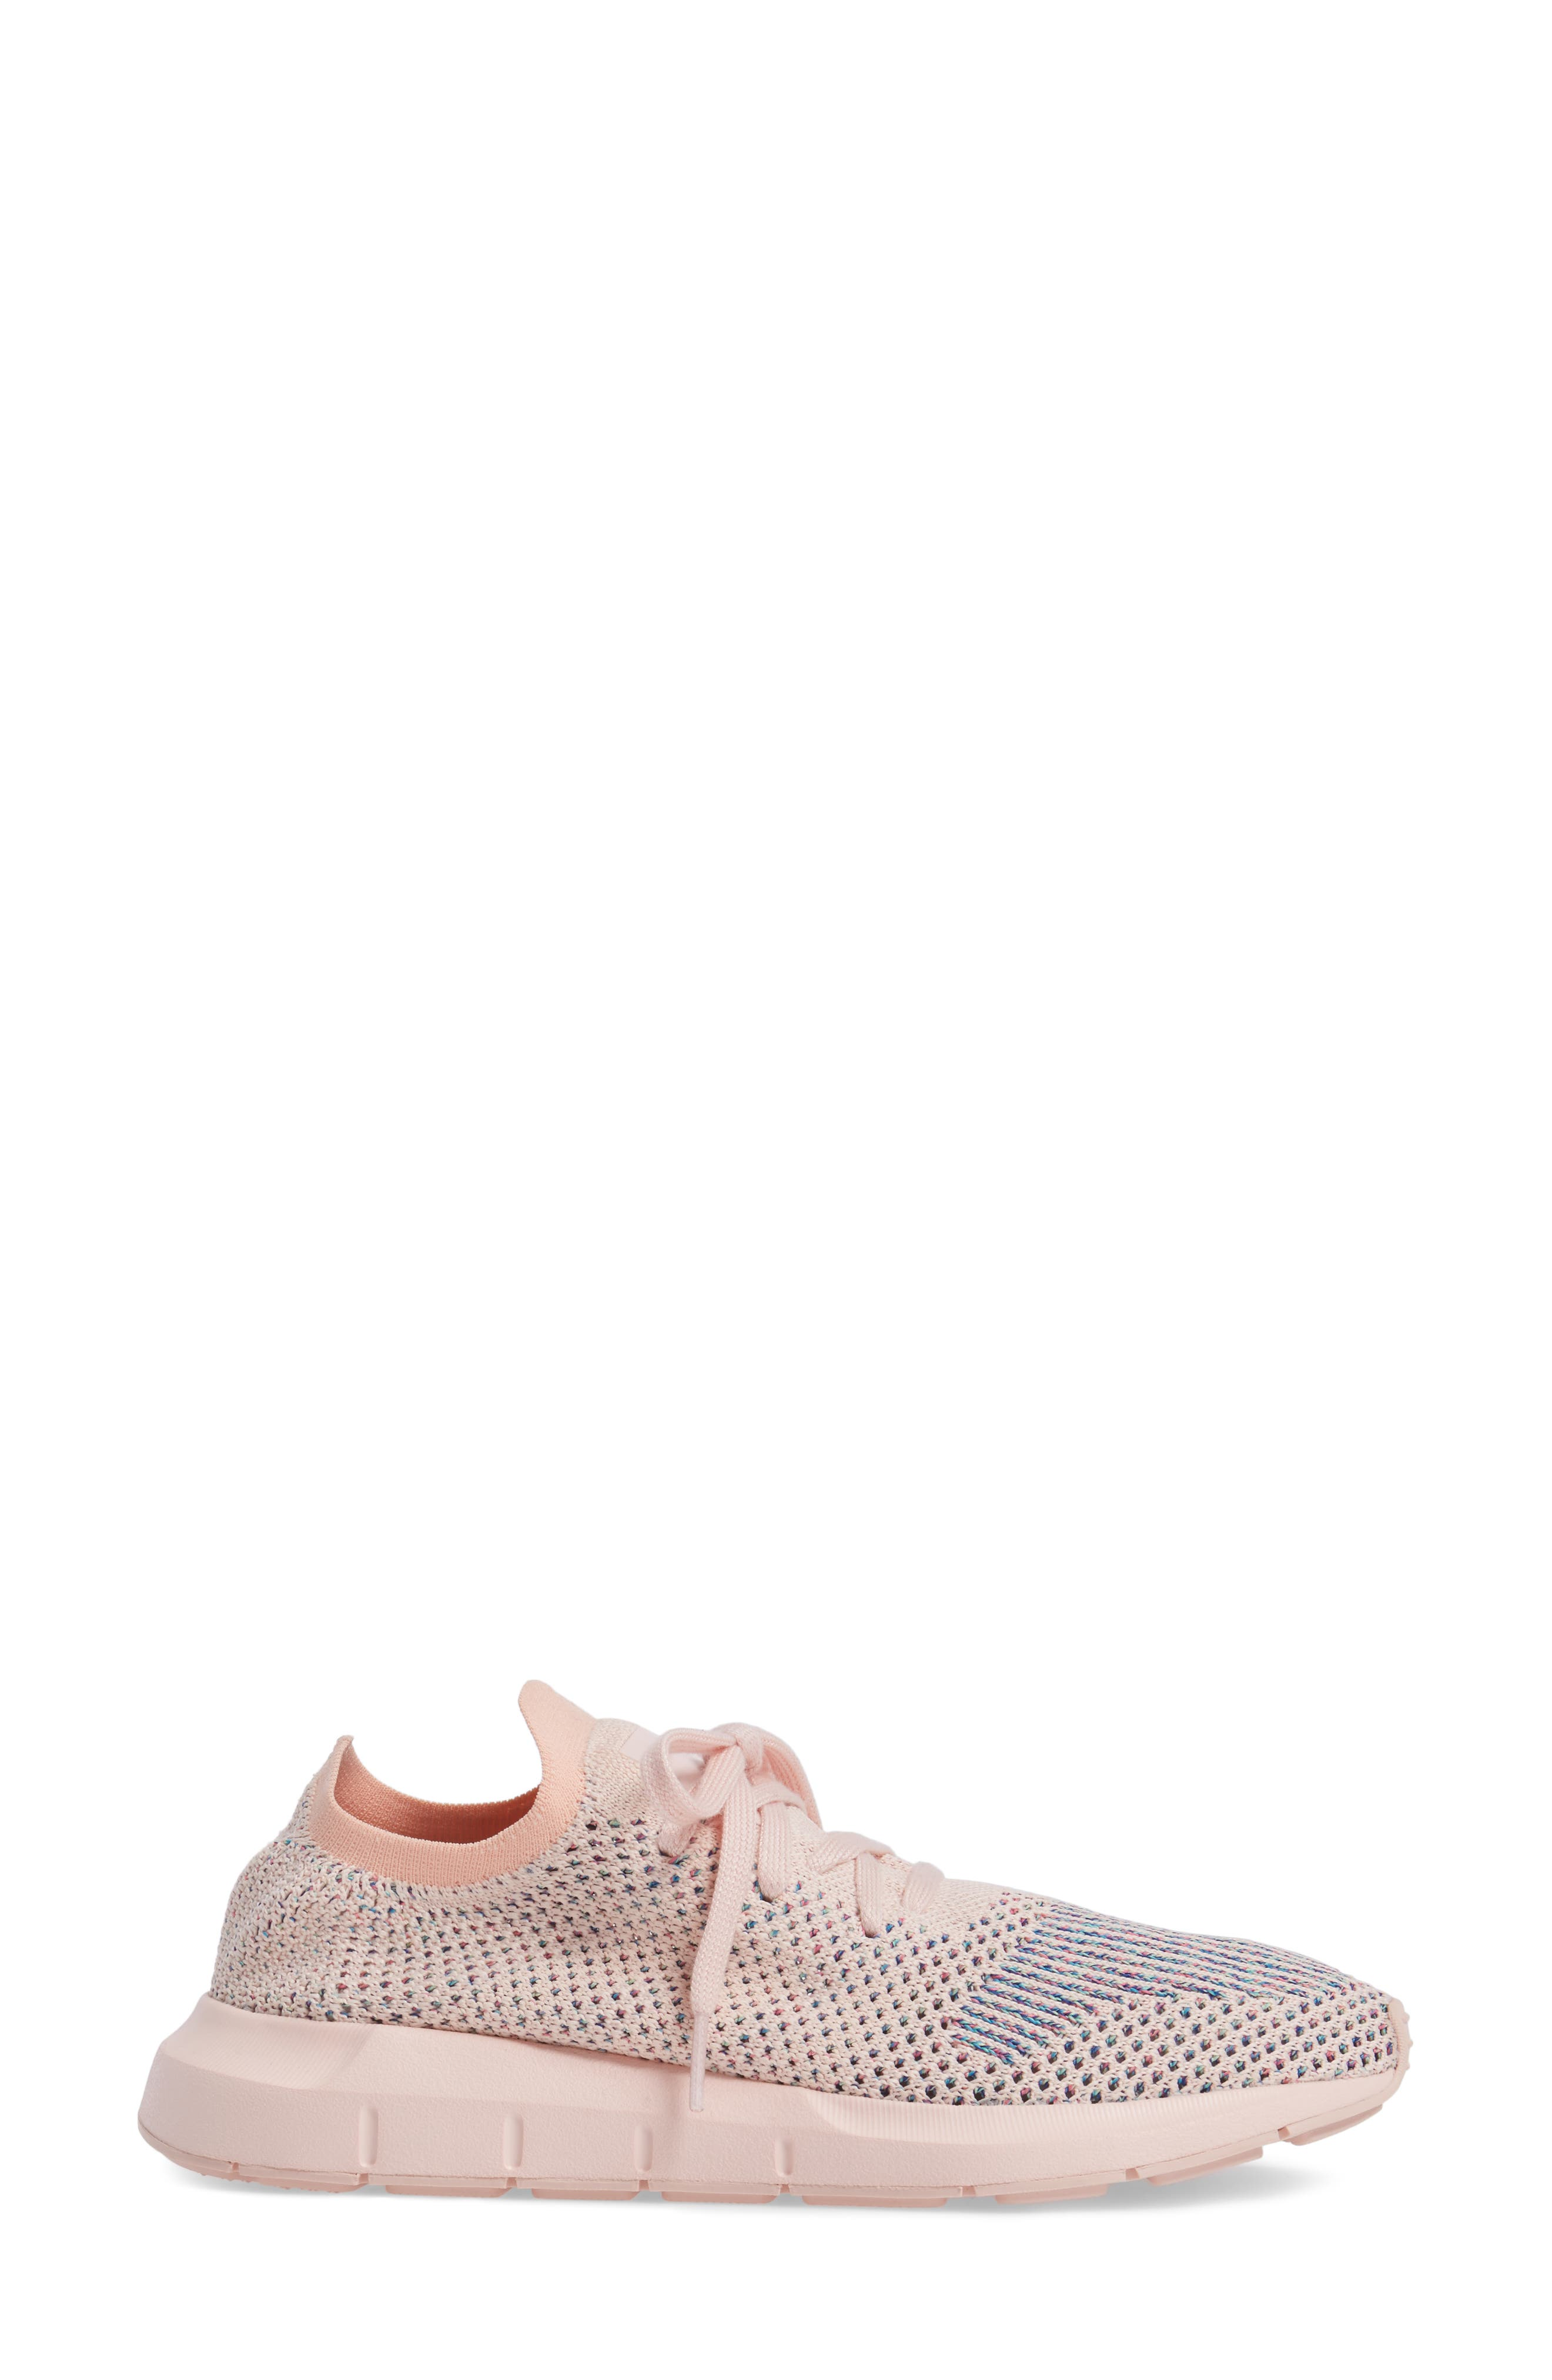 Swift Run Primeknit Training Shoe,                             Alternate thumbnail 3, color,                             Icey Pink/ Icey Pink